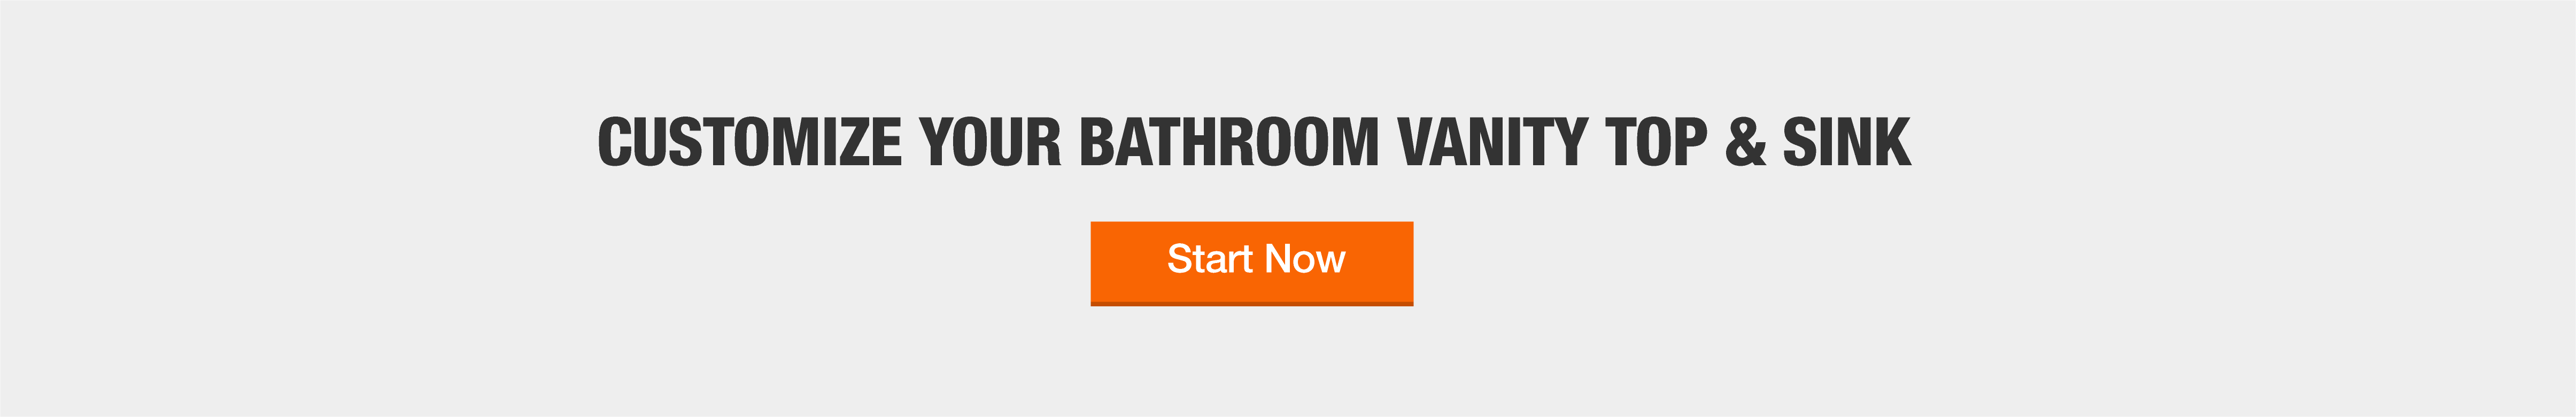 Customize your bathroom vanity top and sink